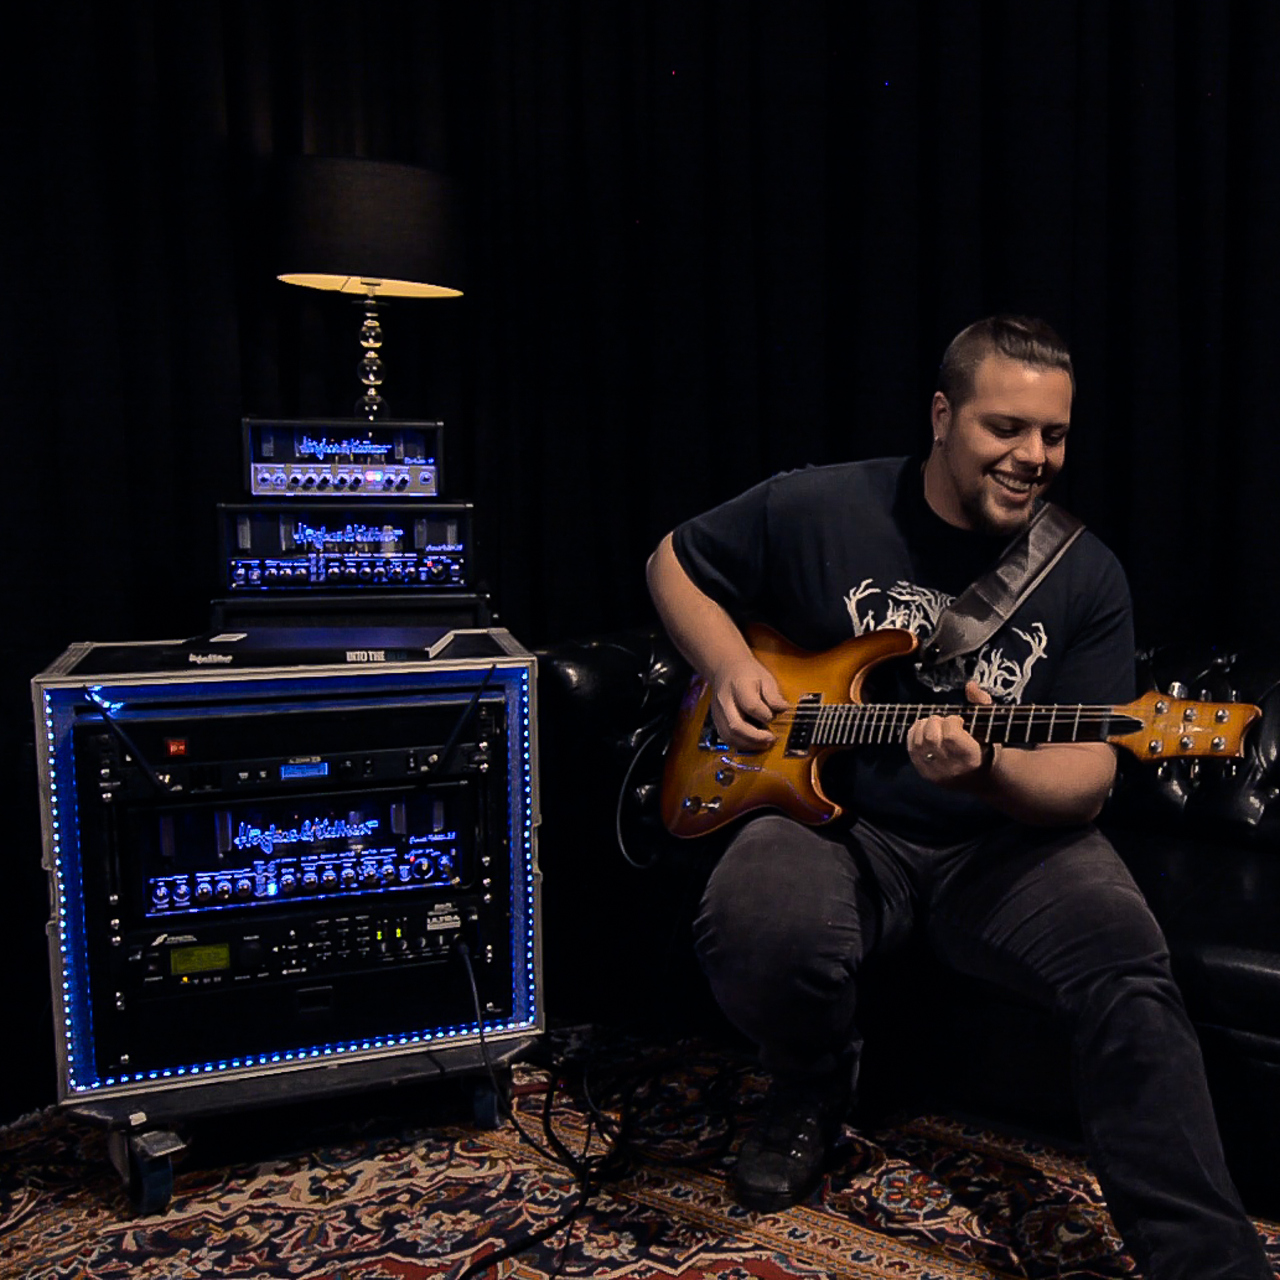 Why A Guitar Rack System With A Built In Tube Amp And